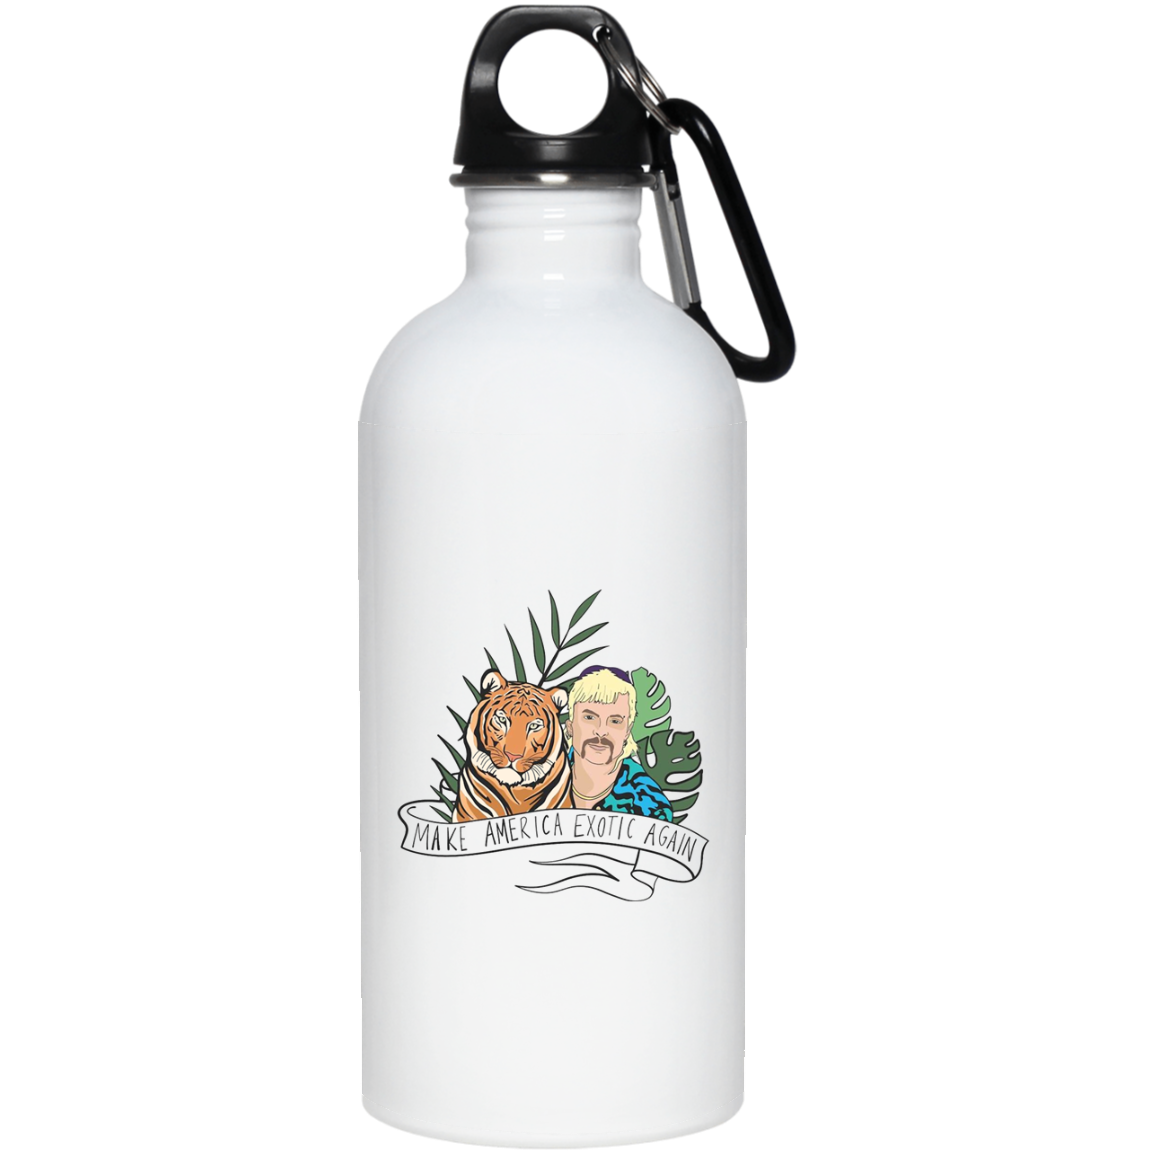 Make America Exotic Again Stainless Steel Water Bottle